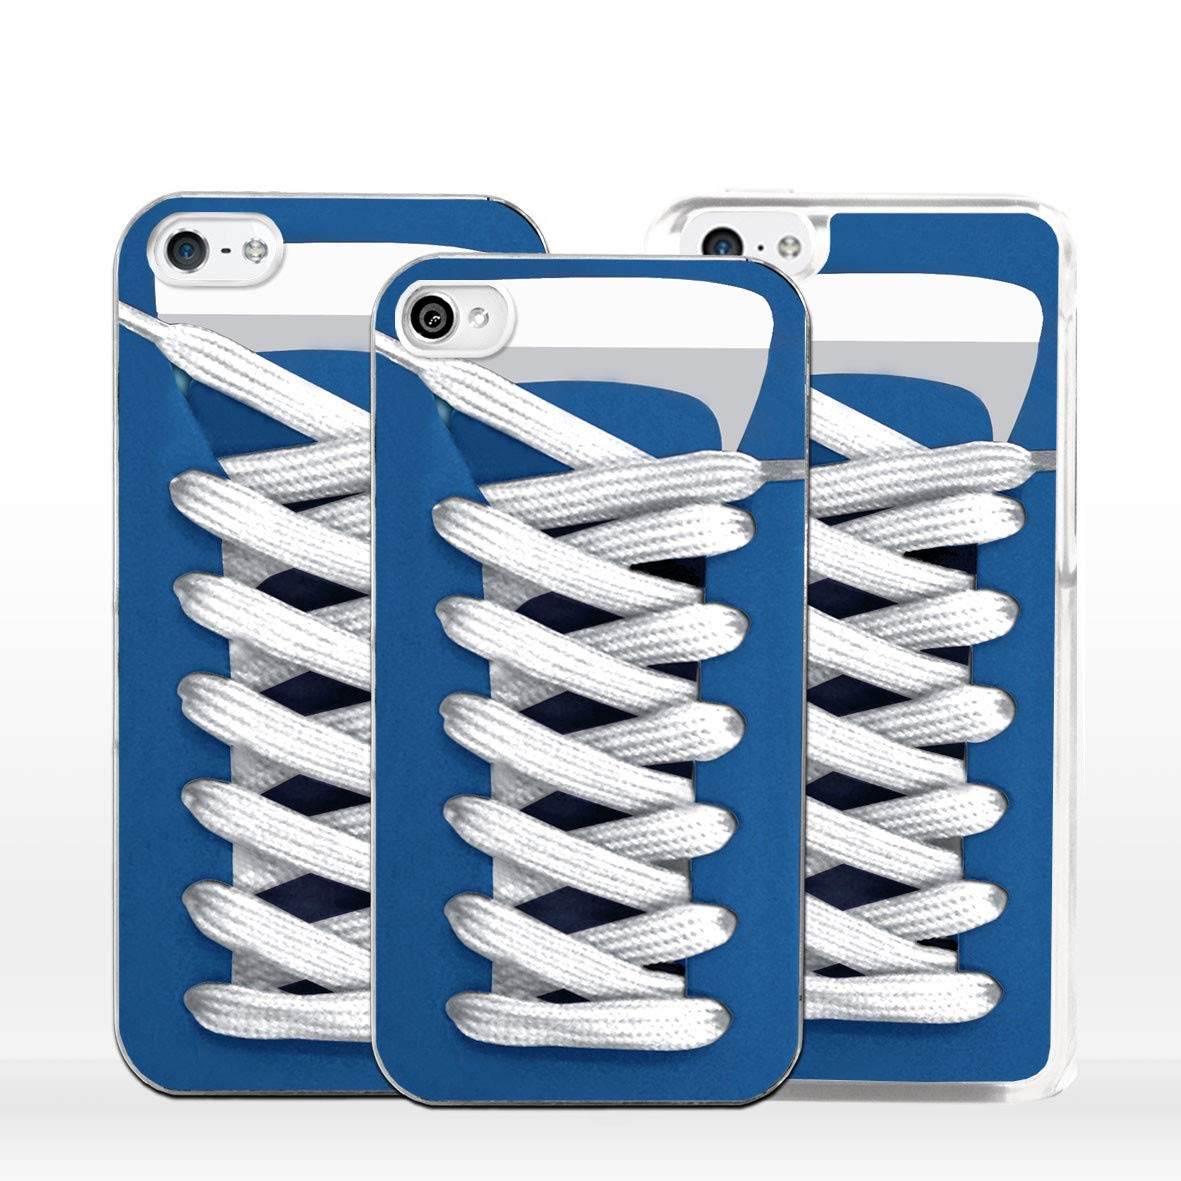 cover iphone 4s stranissime